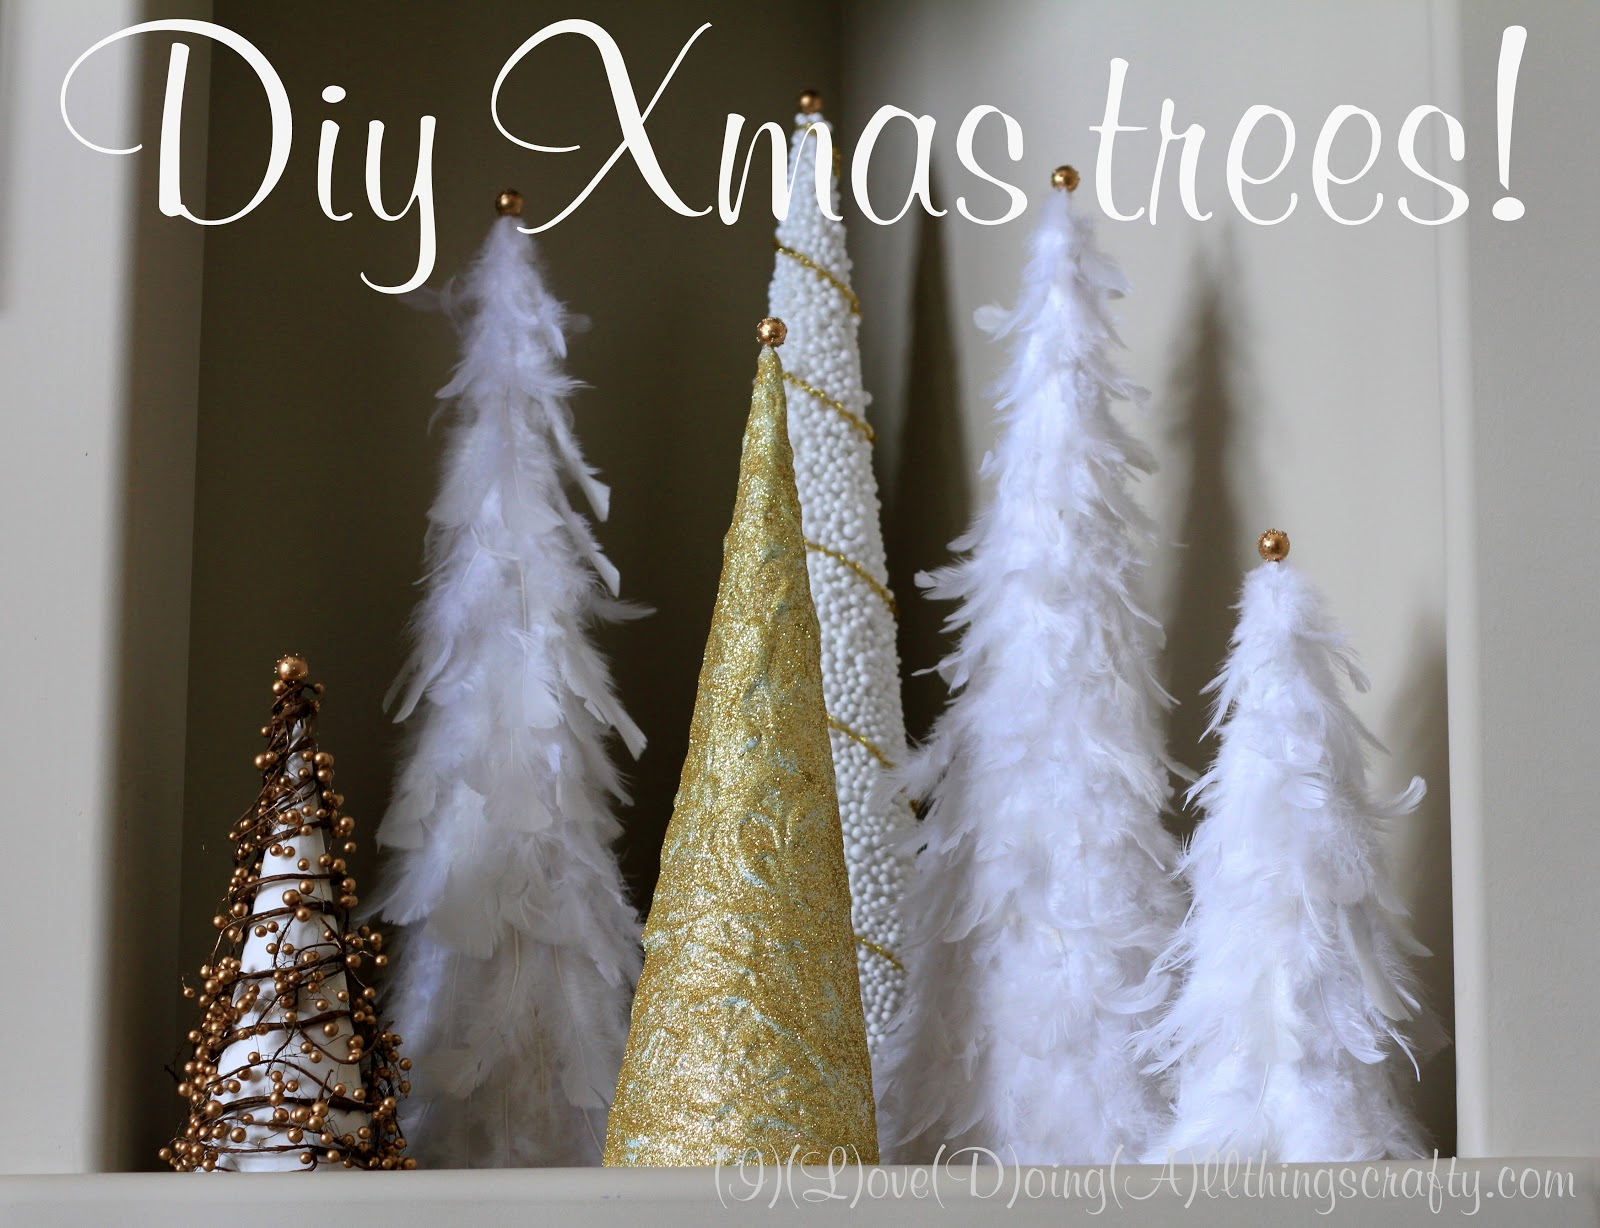 Diy Cone Christmas Trees.I Love Doing All Things Crafty Diy Xmas Trees